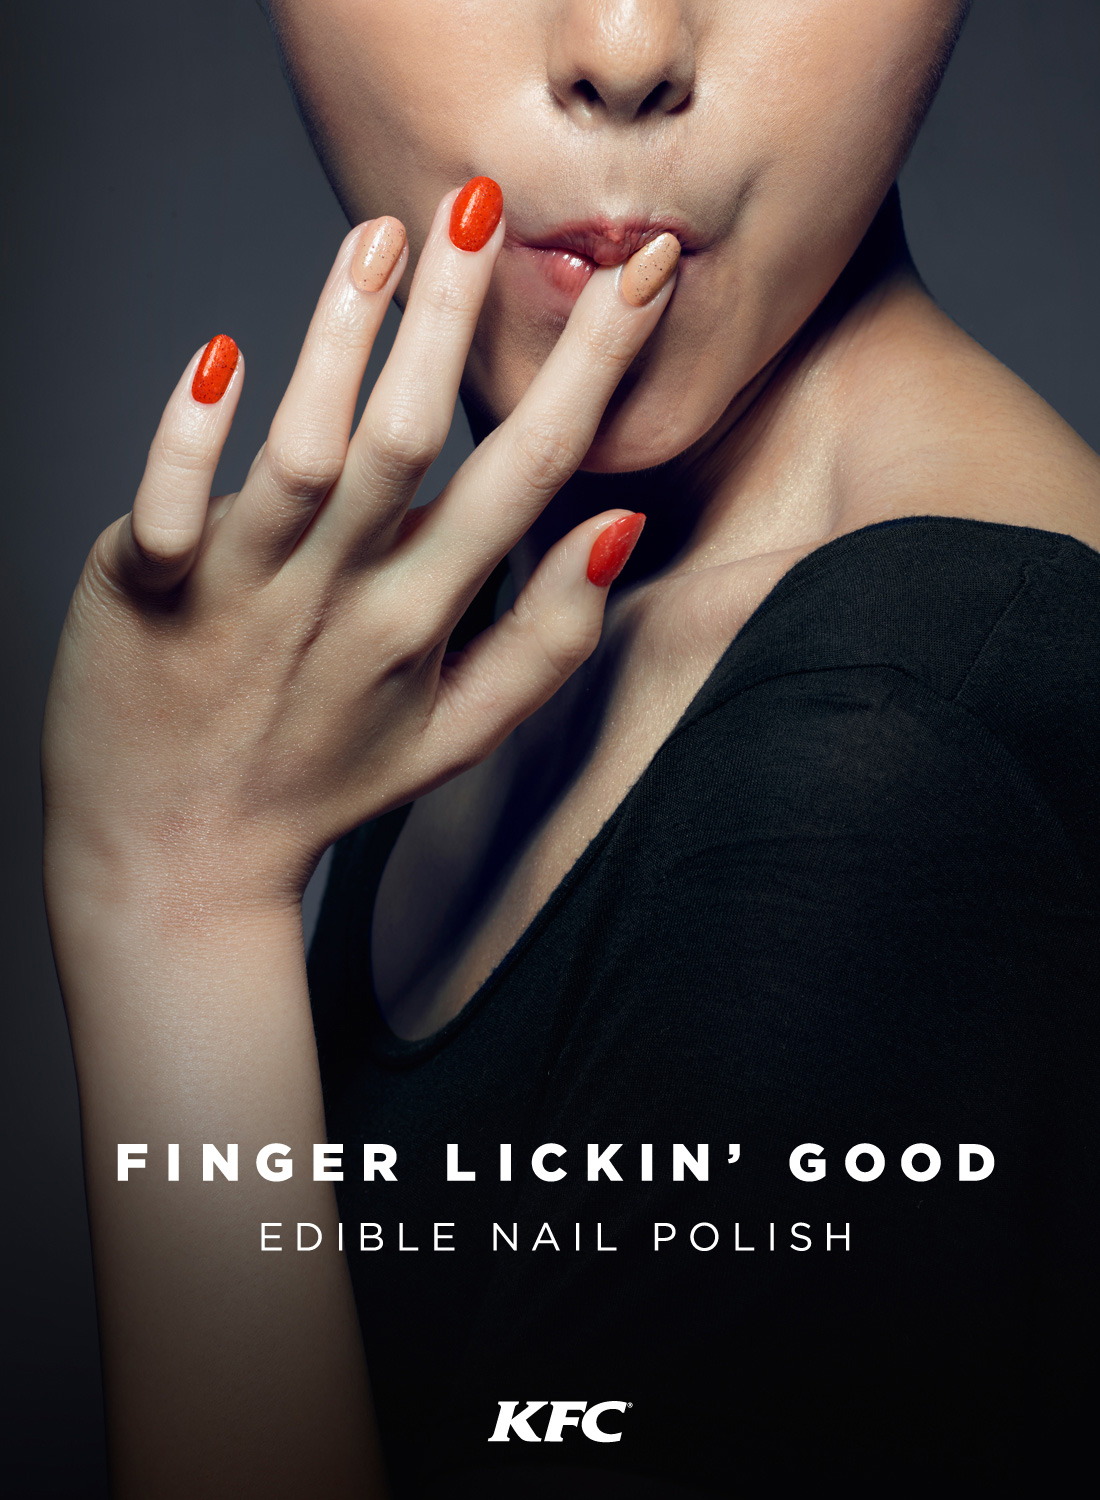 Kfc Just Made Edible Finger Lickin Good Nail Polish That Yeah